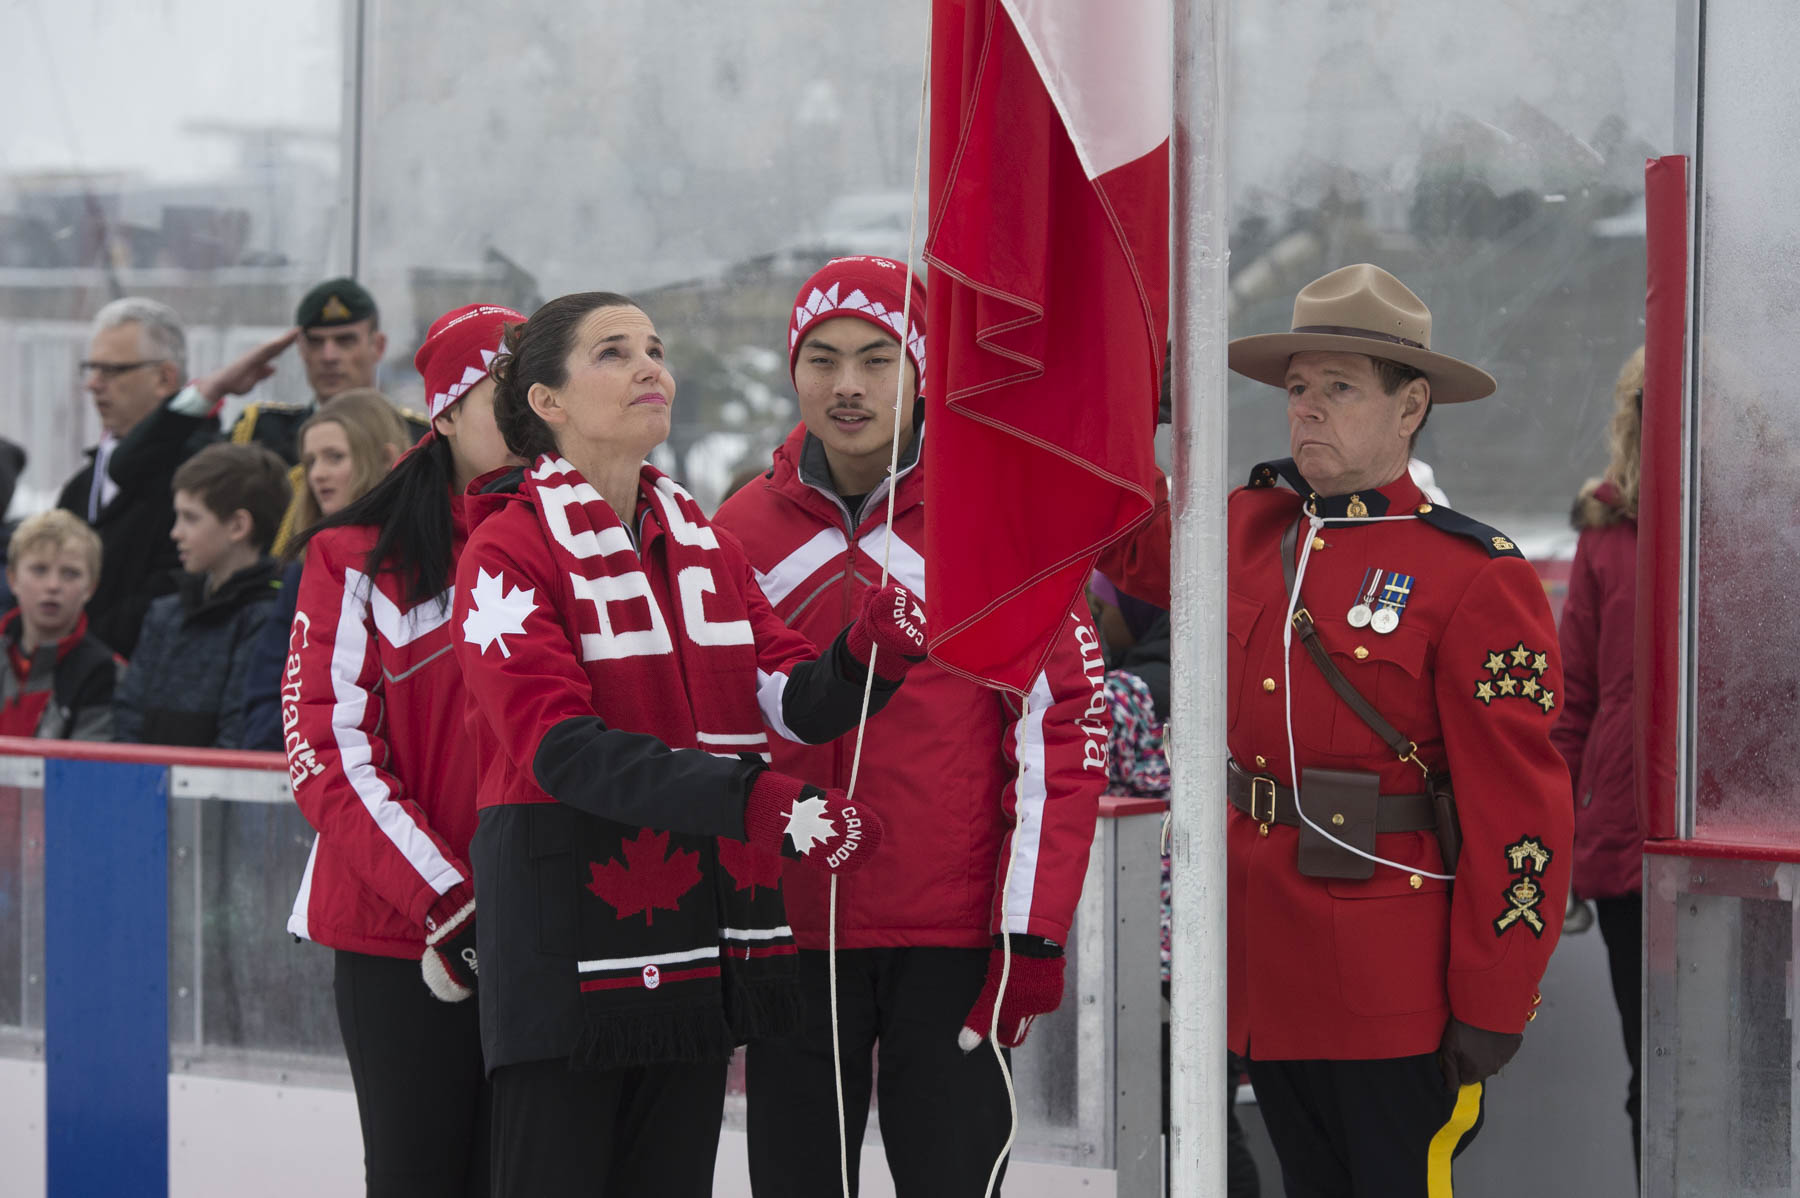 Next, the Honourable Kirsty Duncan, Minister of Science and Minister of Sport and Persons with Disabilities along with two Special Olympics athletes raised the Canadian flag.